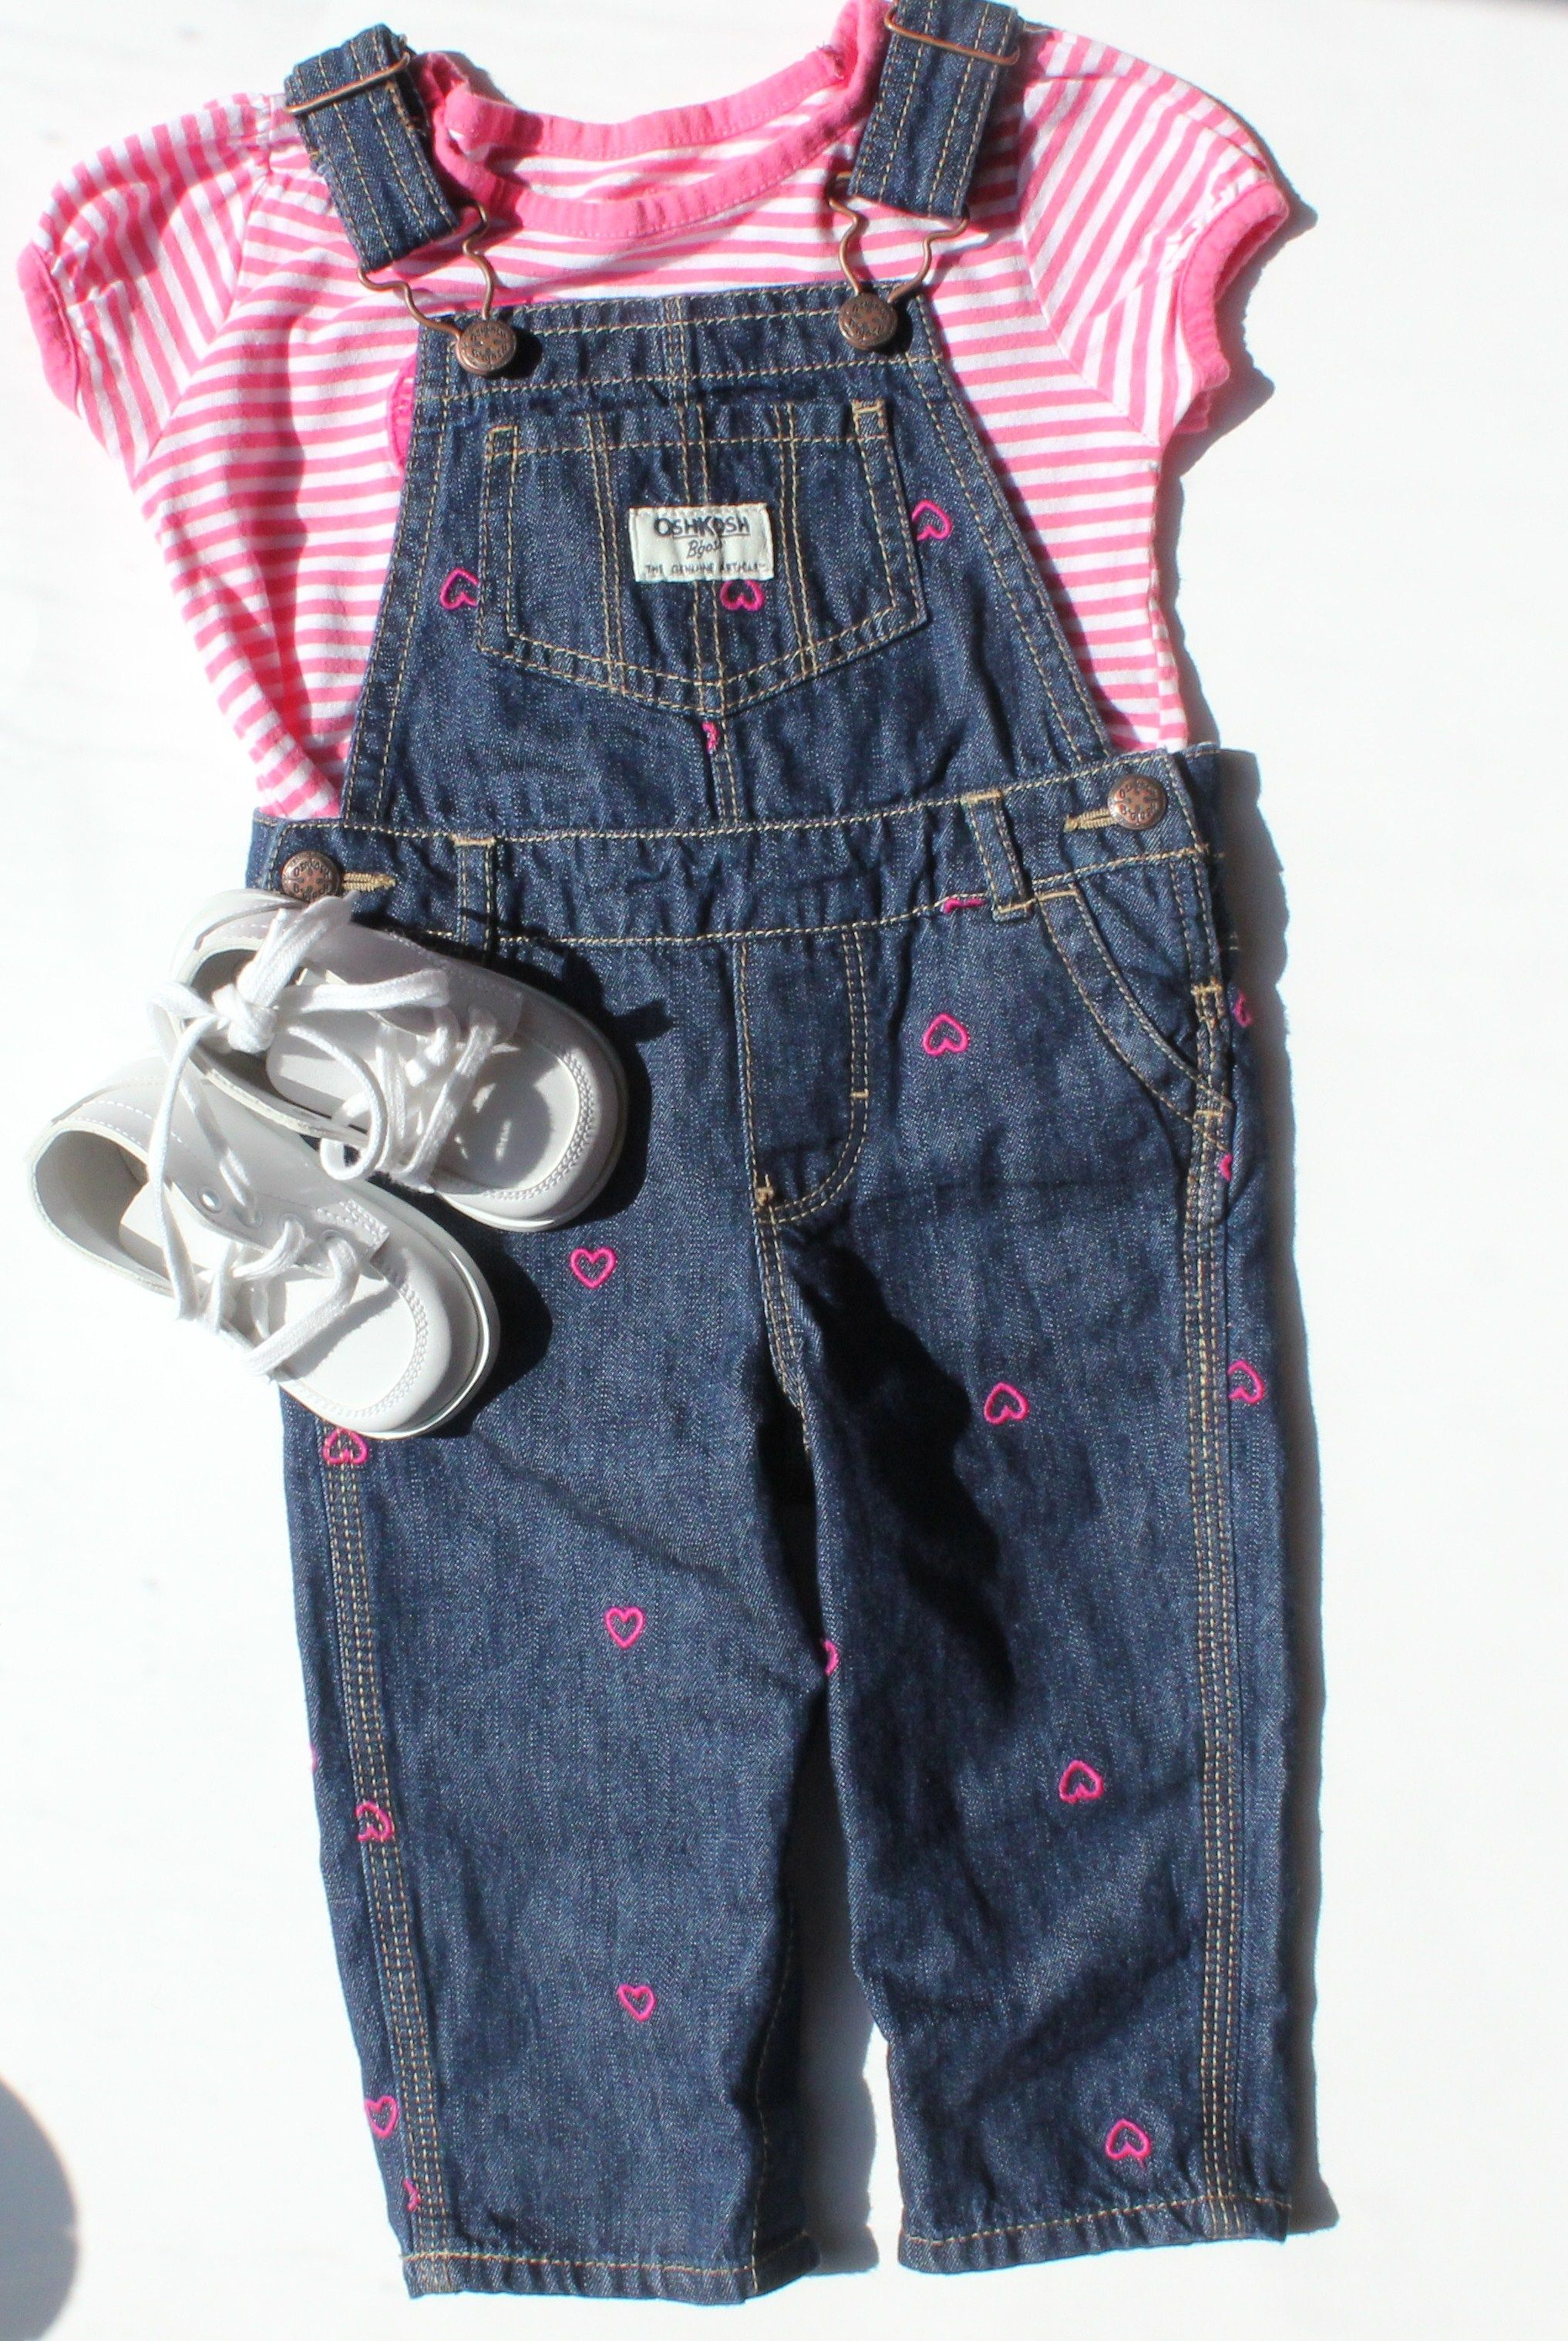 Baby Girl Outfit with Denim Overalls by Osh Kosh and Pink White